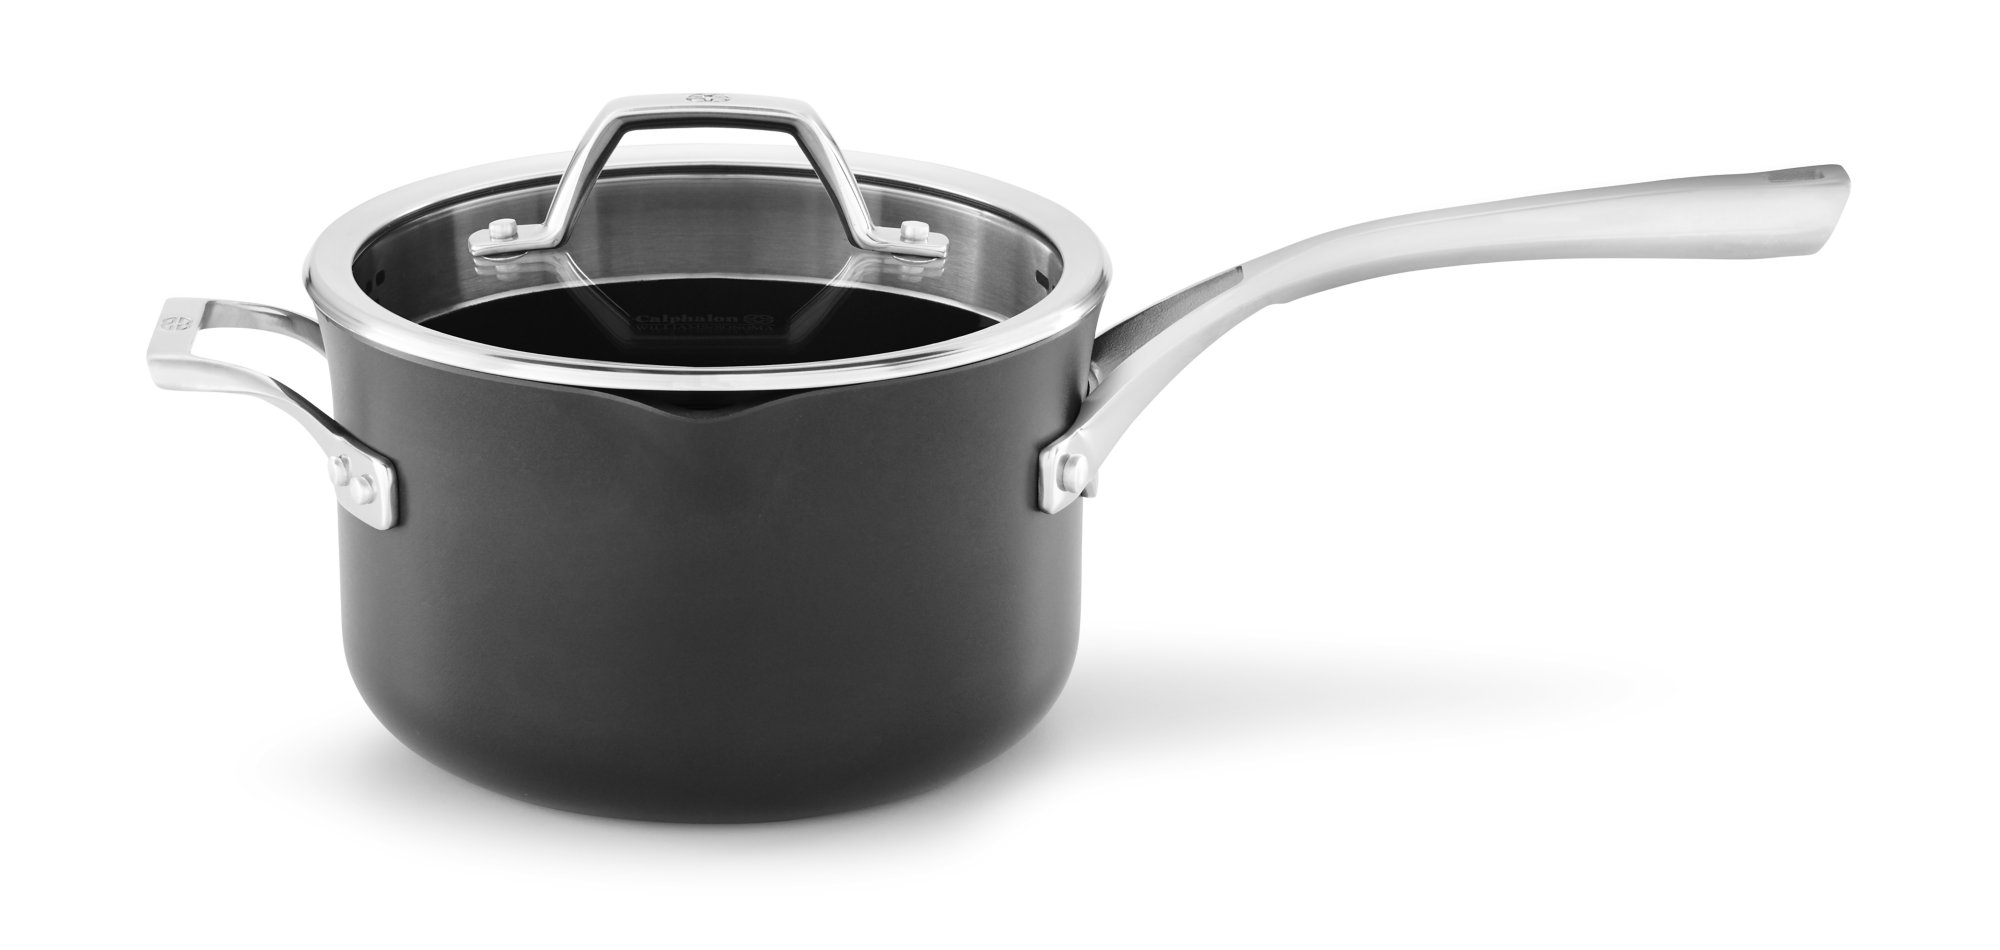 Calphalon Williams-Sonoma Elite Nonstick 4-Qt. Sauce Pan with Cover